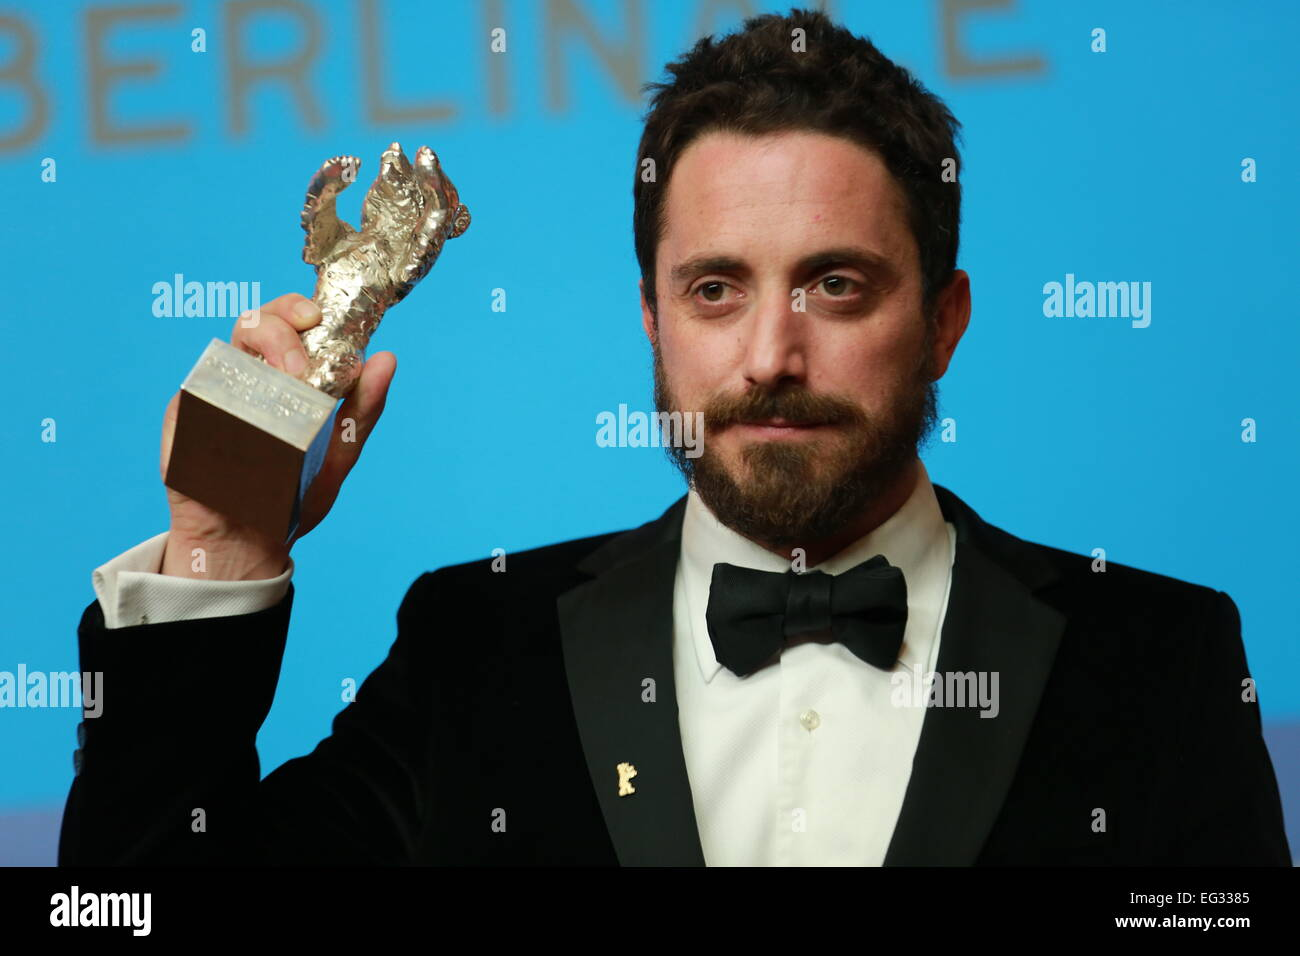 14th feb 2015 pablo larran with the silver bear in hand at the press conference at the hyatt hotel credit simone kuhlmeypacific pressalamy live news - Silver Hotel 2015